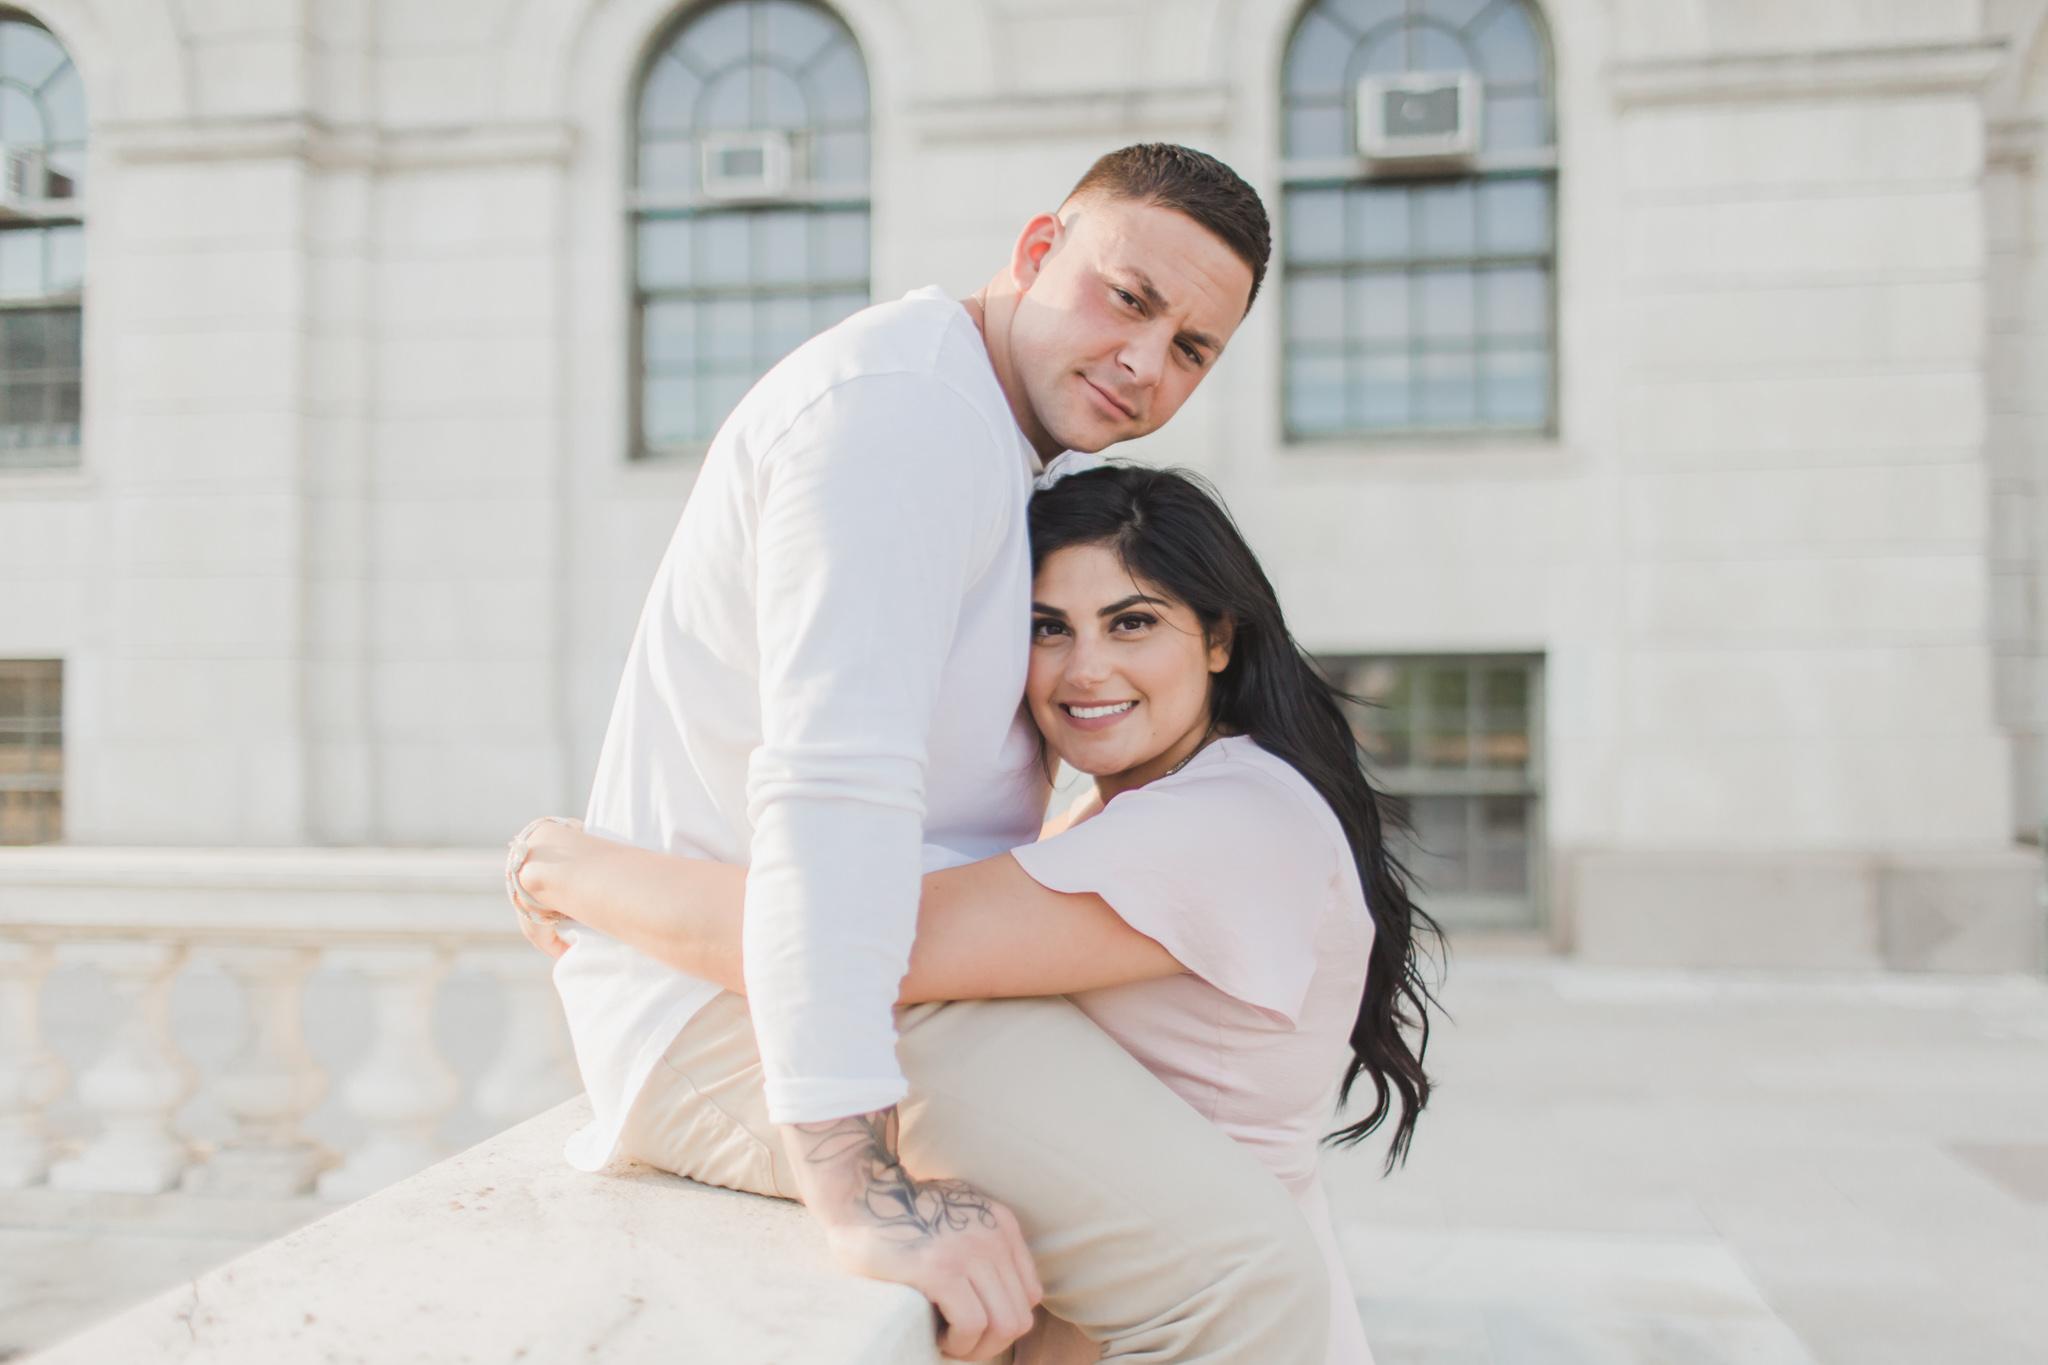 engagement_wedding_photographer_jillian_rollins_photography-220.jpg